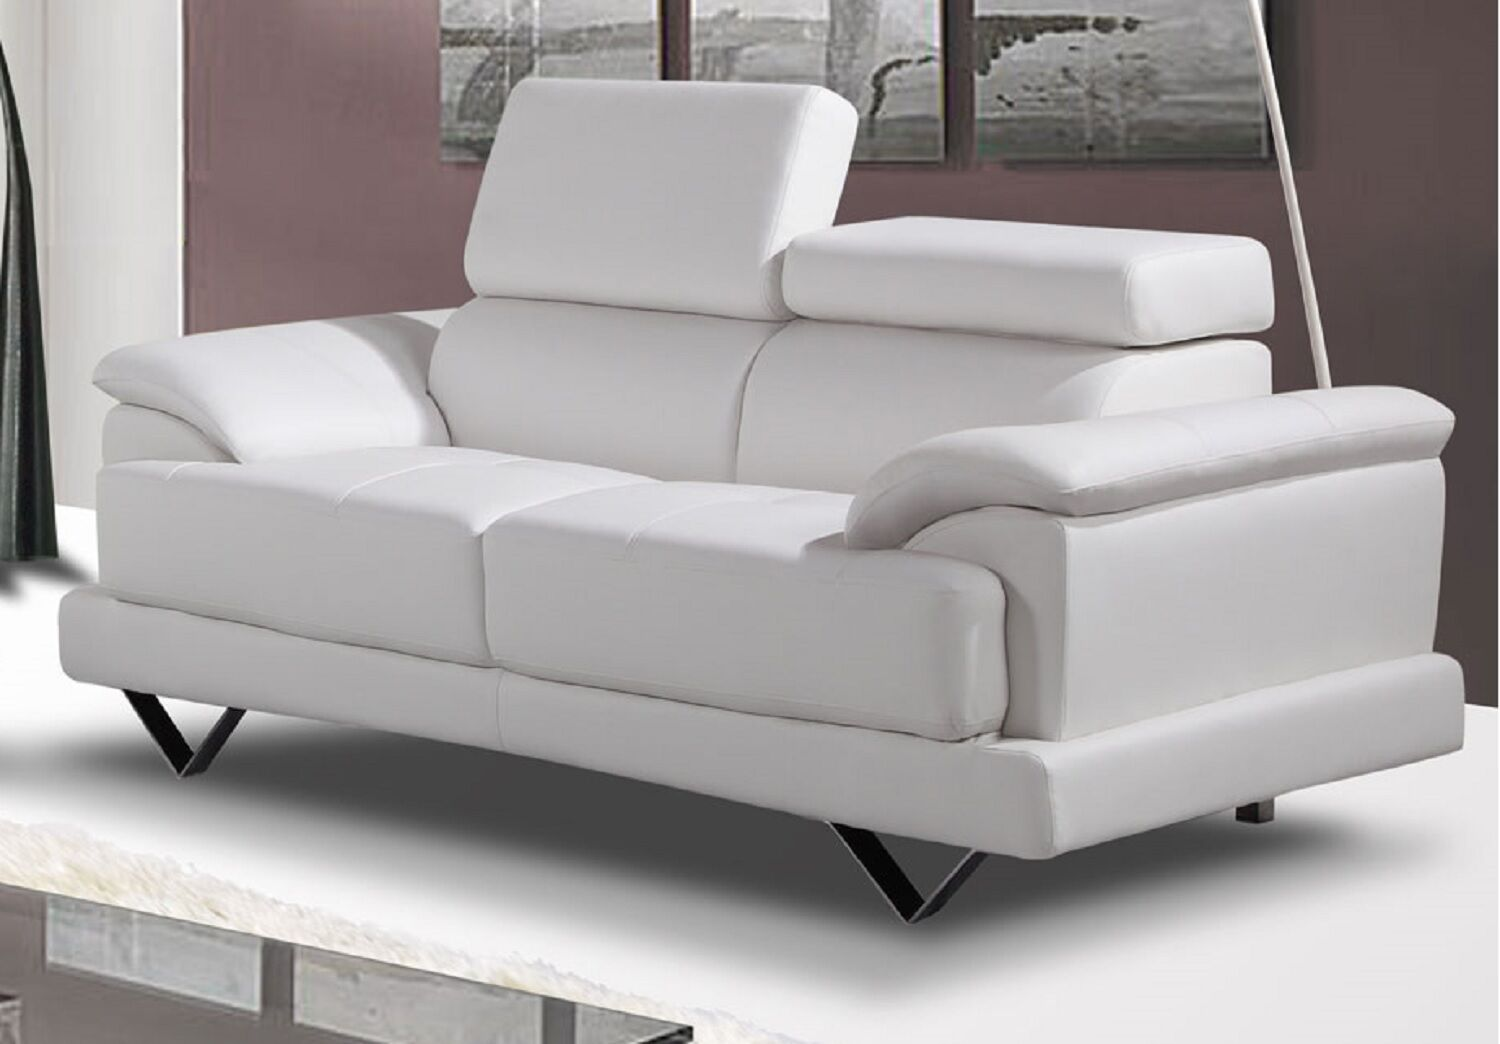 Cosmo white bonded leather 2 seater sofa ebay for Leather sofa 7 seater